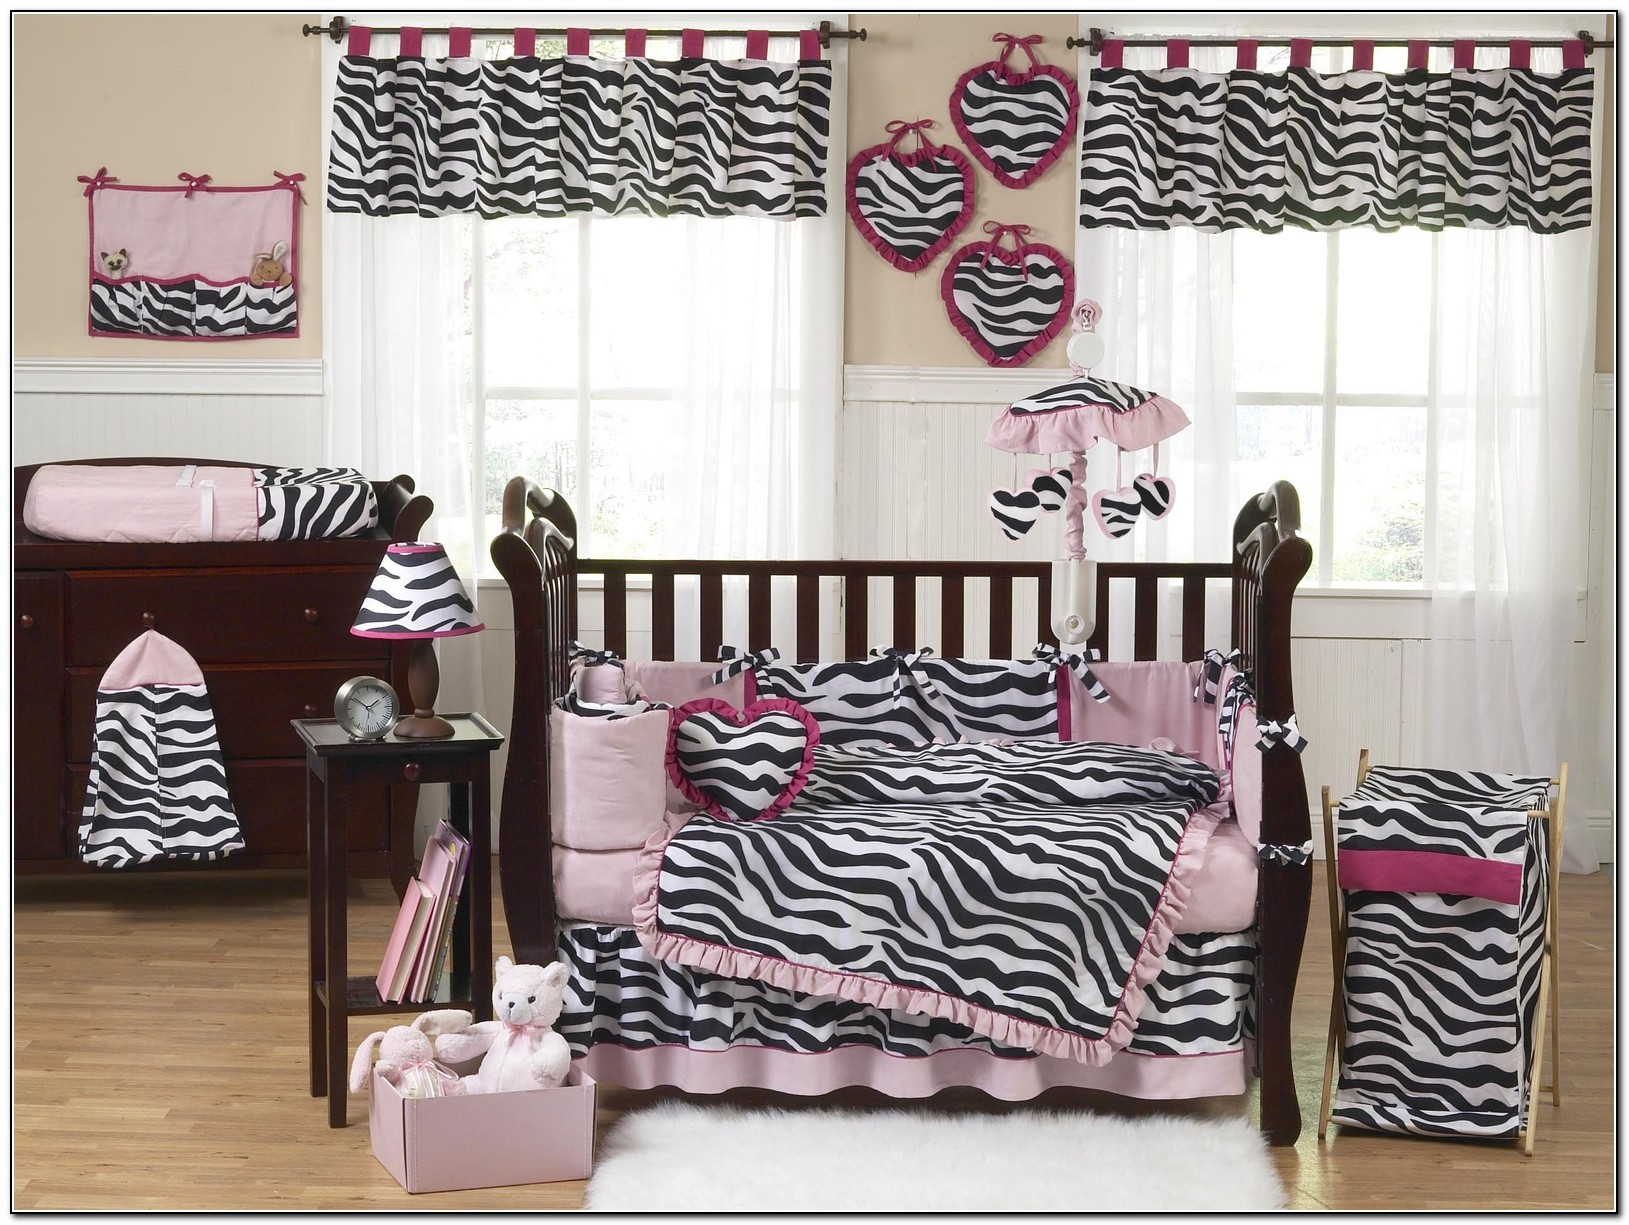 Zebra Print Bedding For Cribs